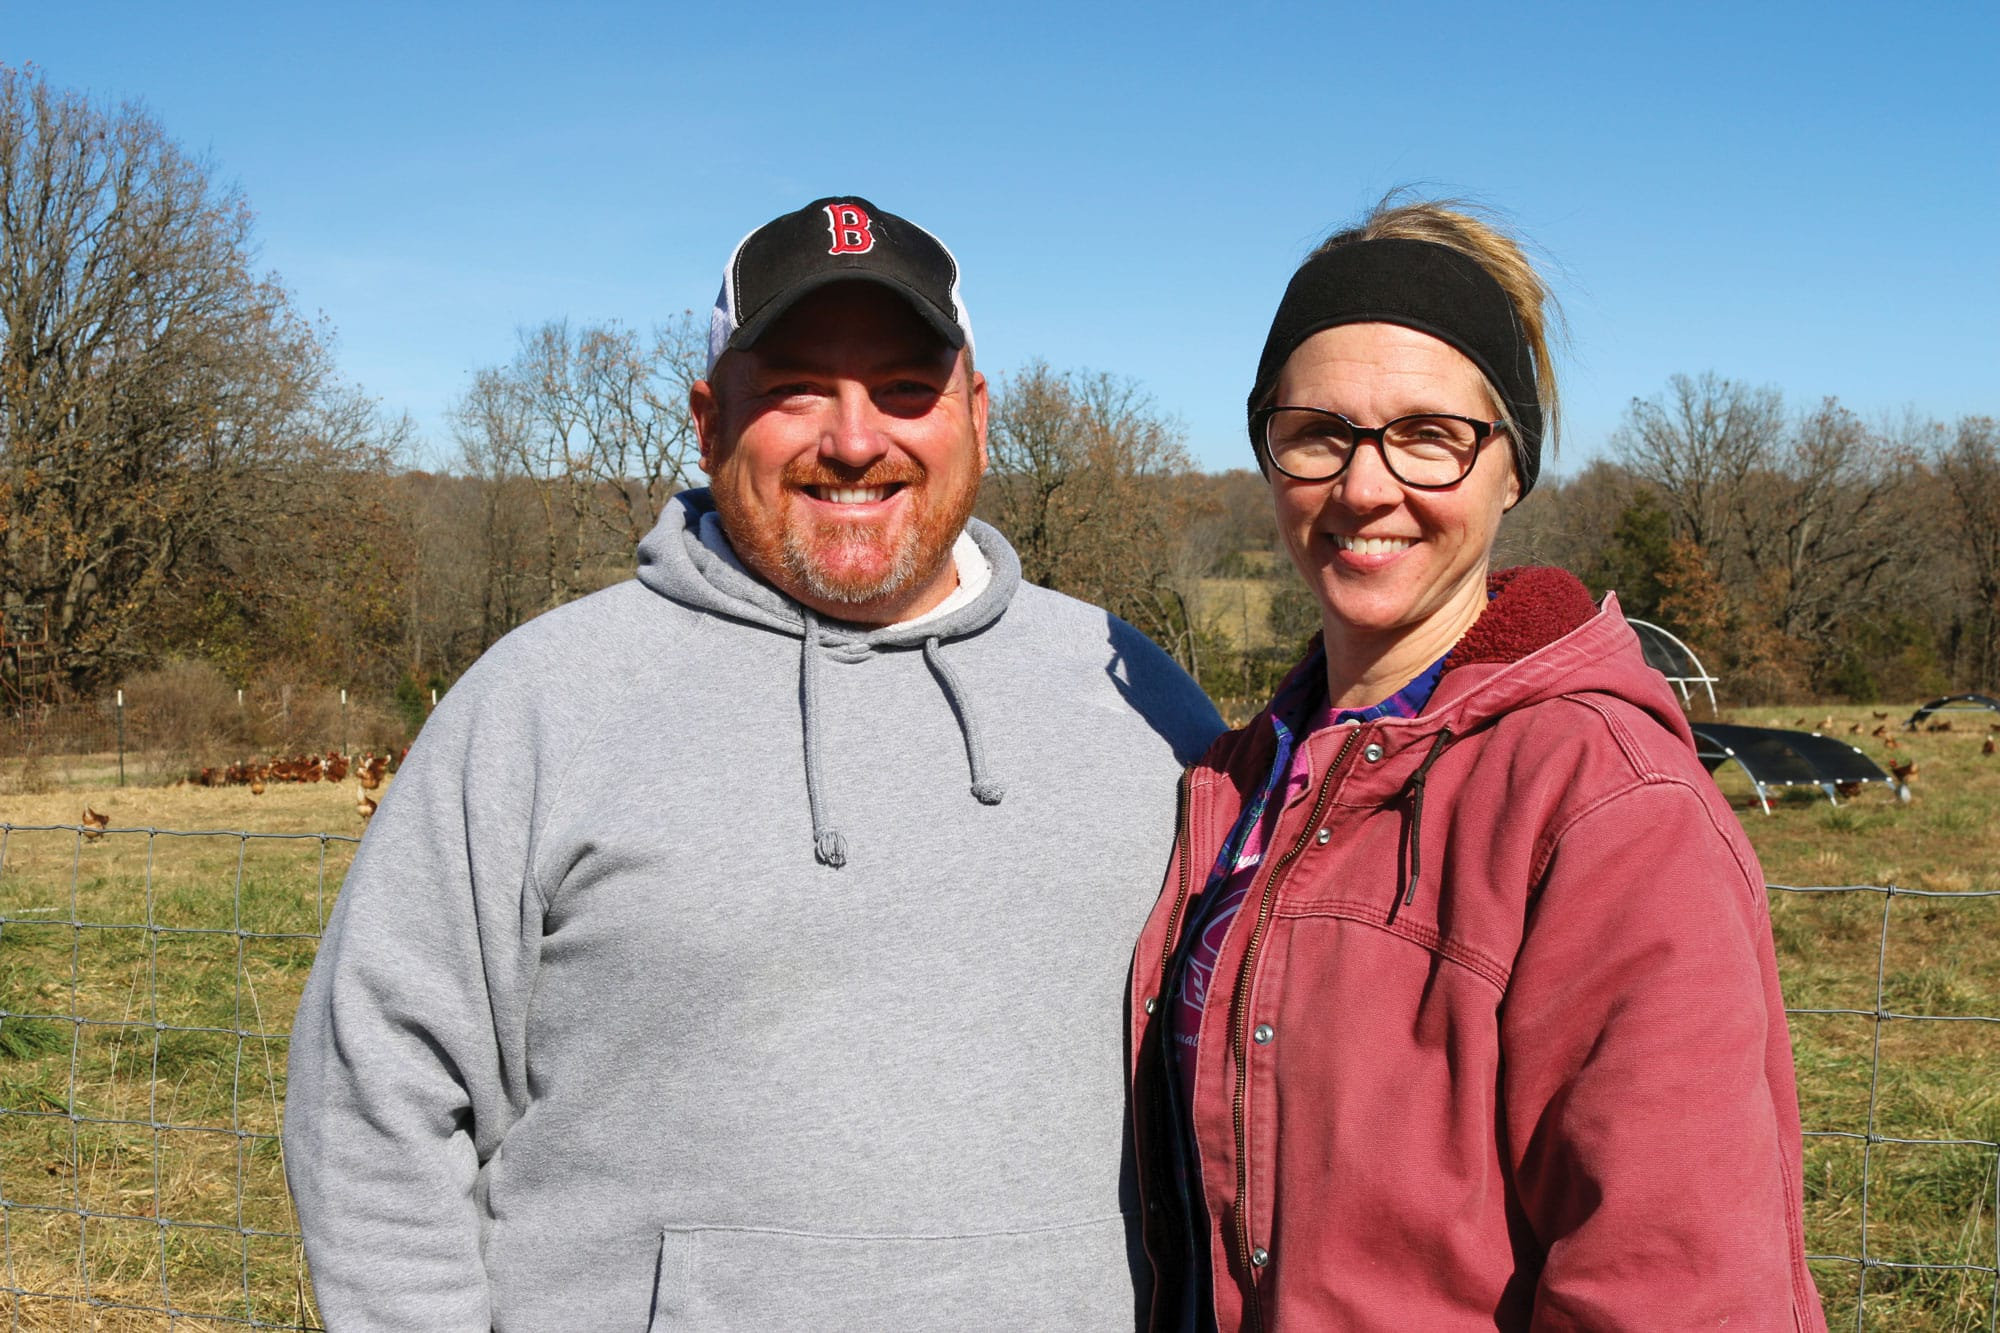 A portrait of Reggie and Missy, farmers from Buskin Acres, standing in a field near their chickens